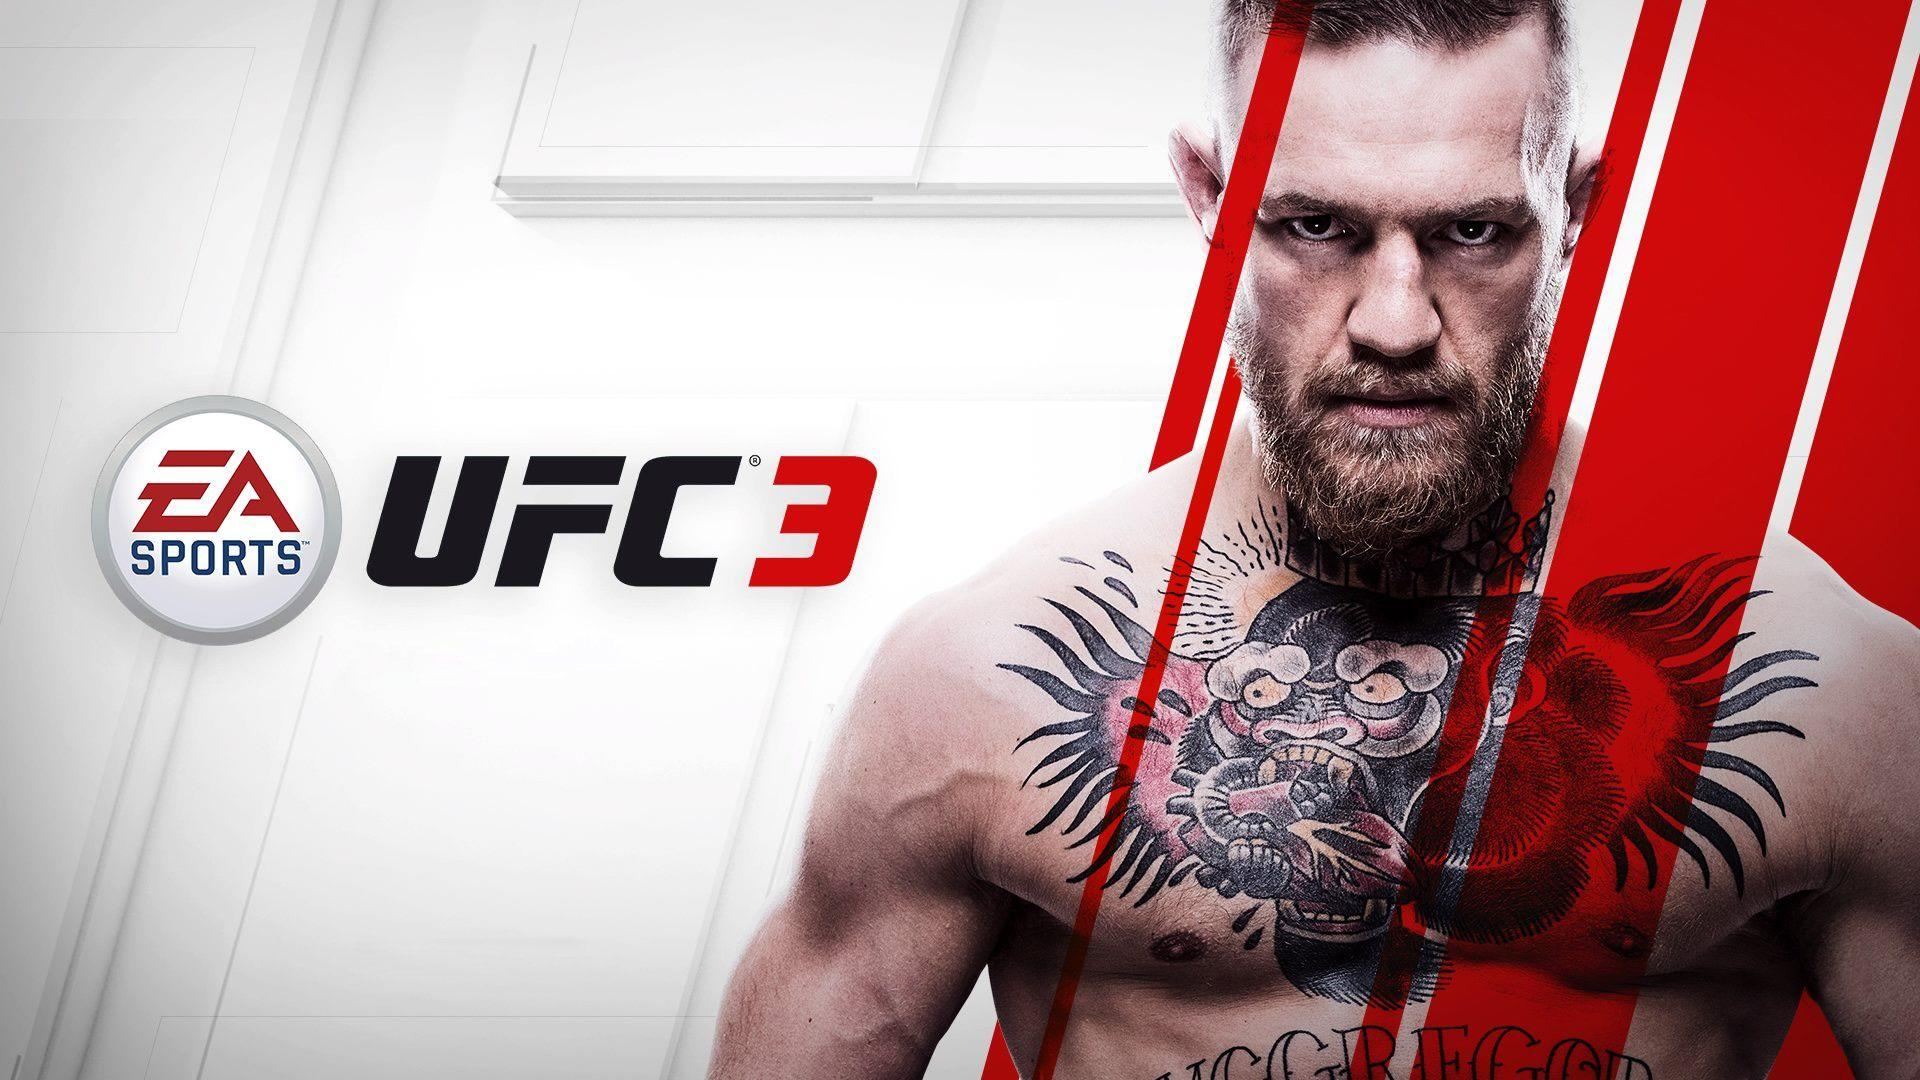 ufc 3 notorious edition review